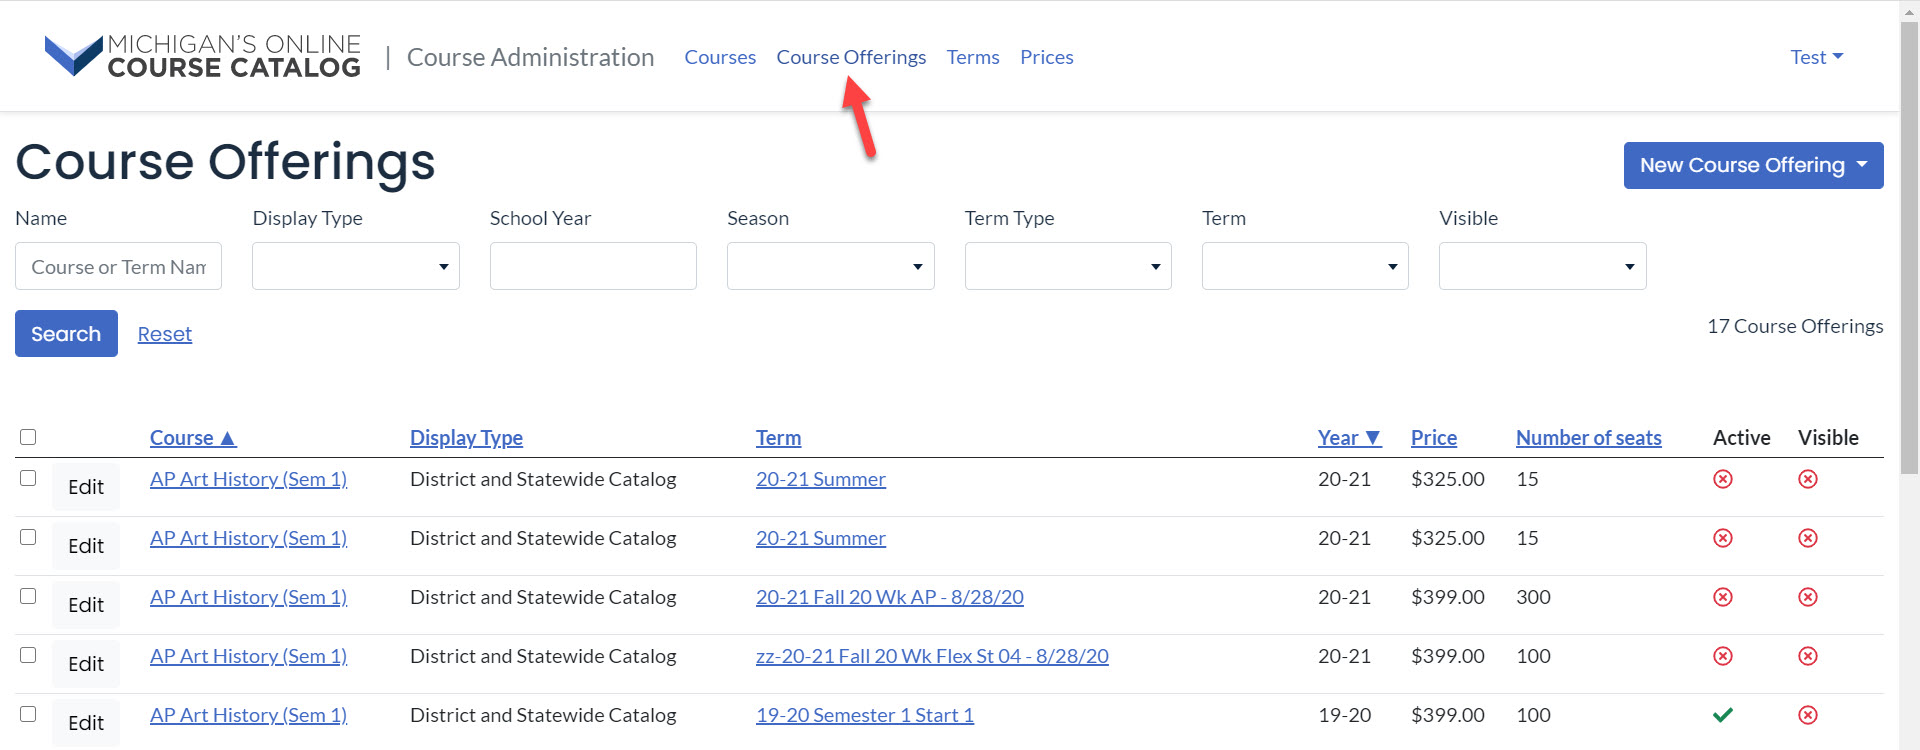 The Course Offerings page displays search filters as well as a results table. An arrow points to the Course Offerings option in the top menu.